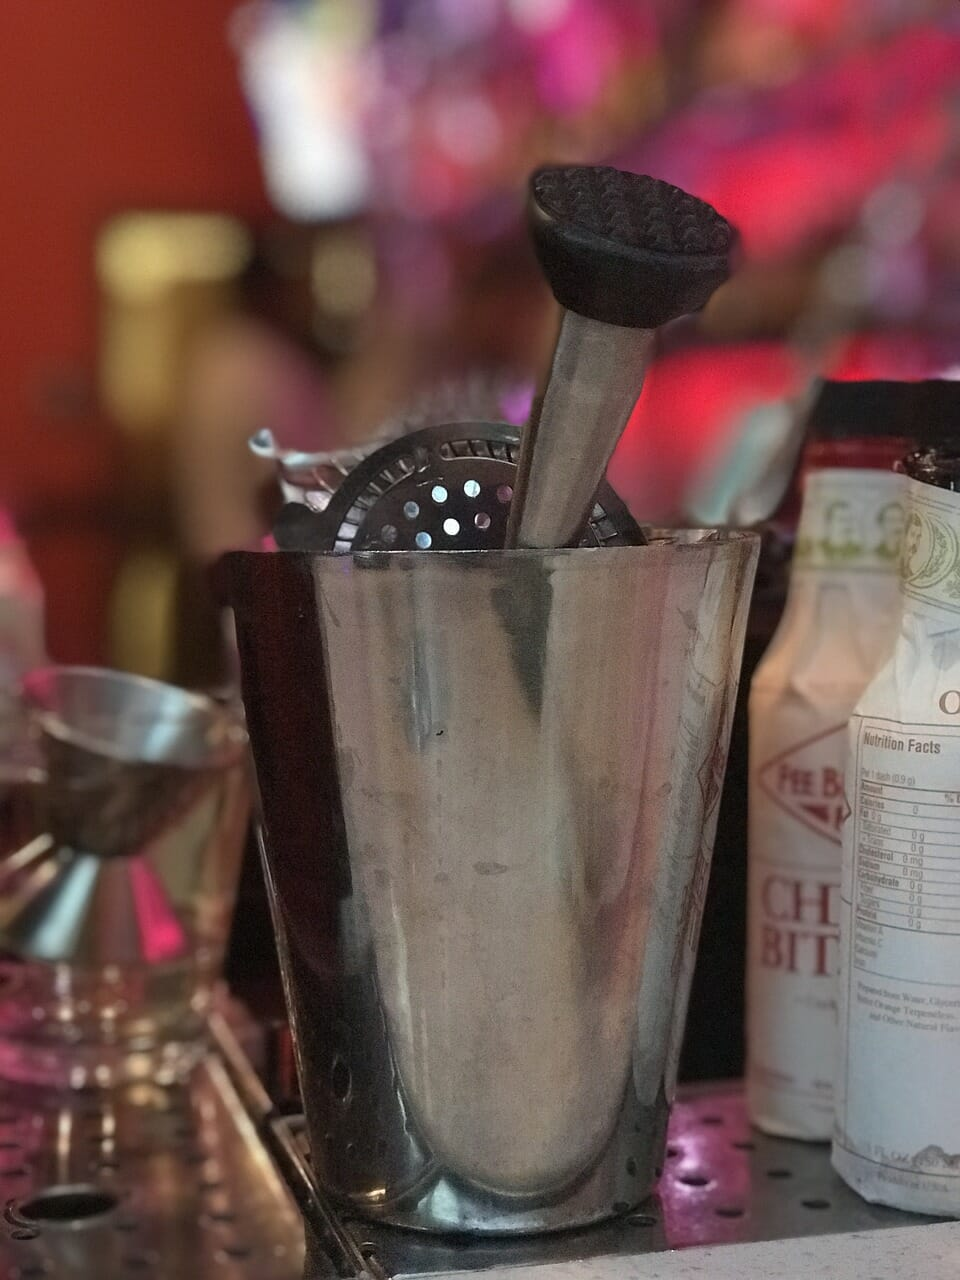 Bar tools for a bartending career